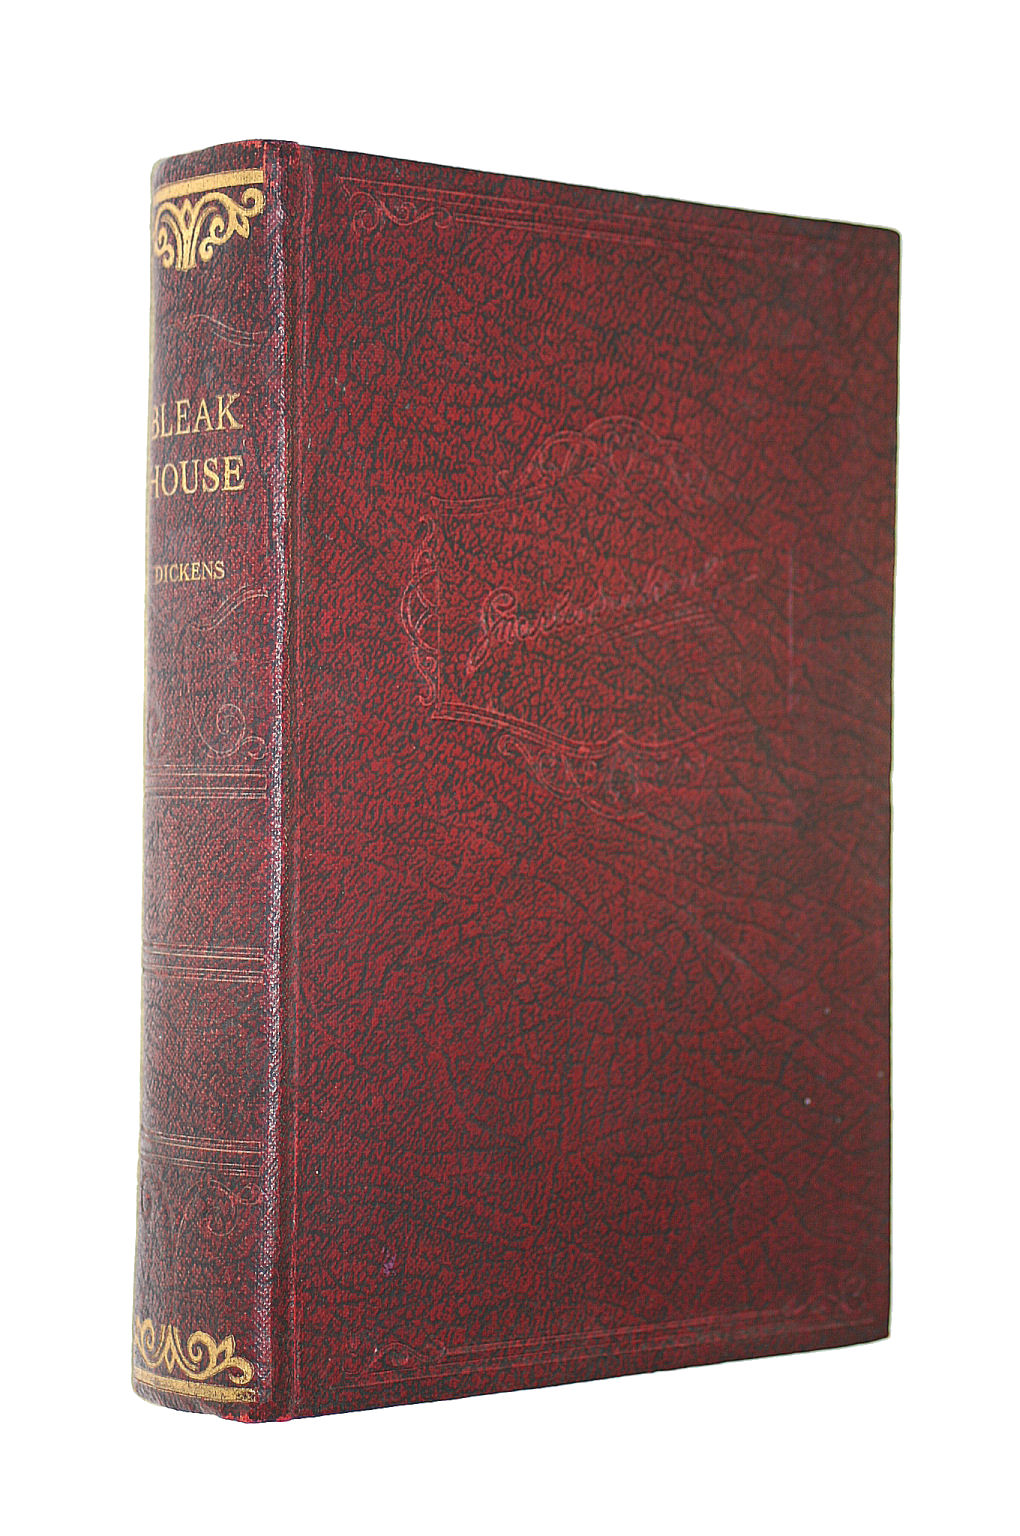 Image for Charles Dickens Bleak House Illustrated By Phiz